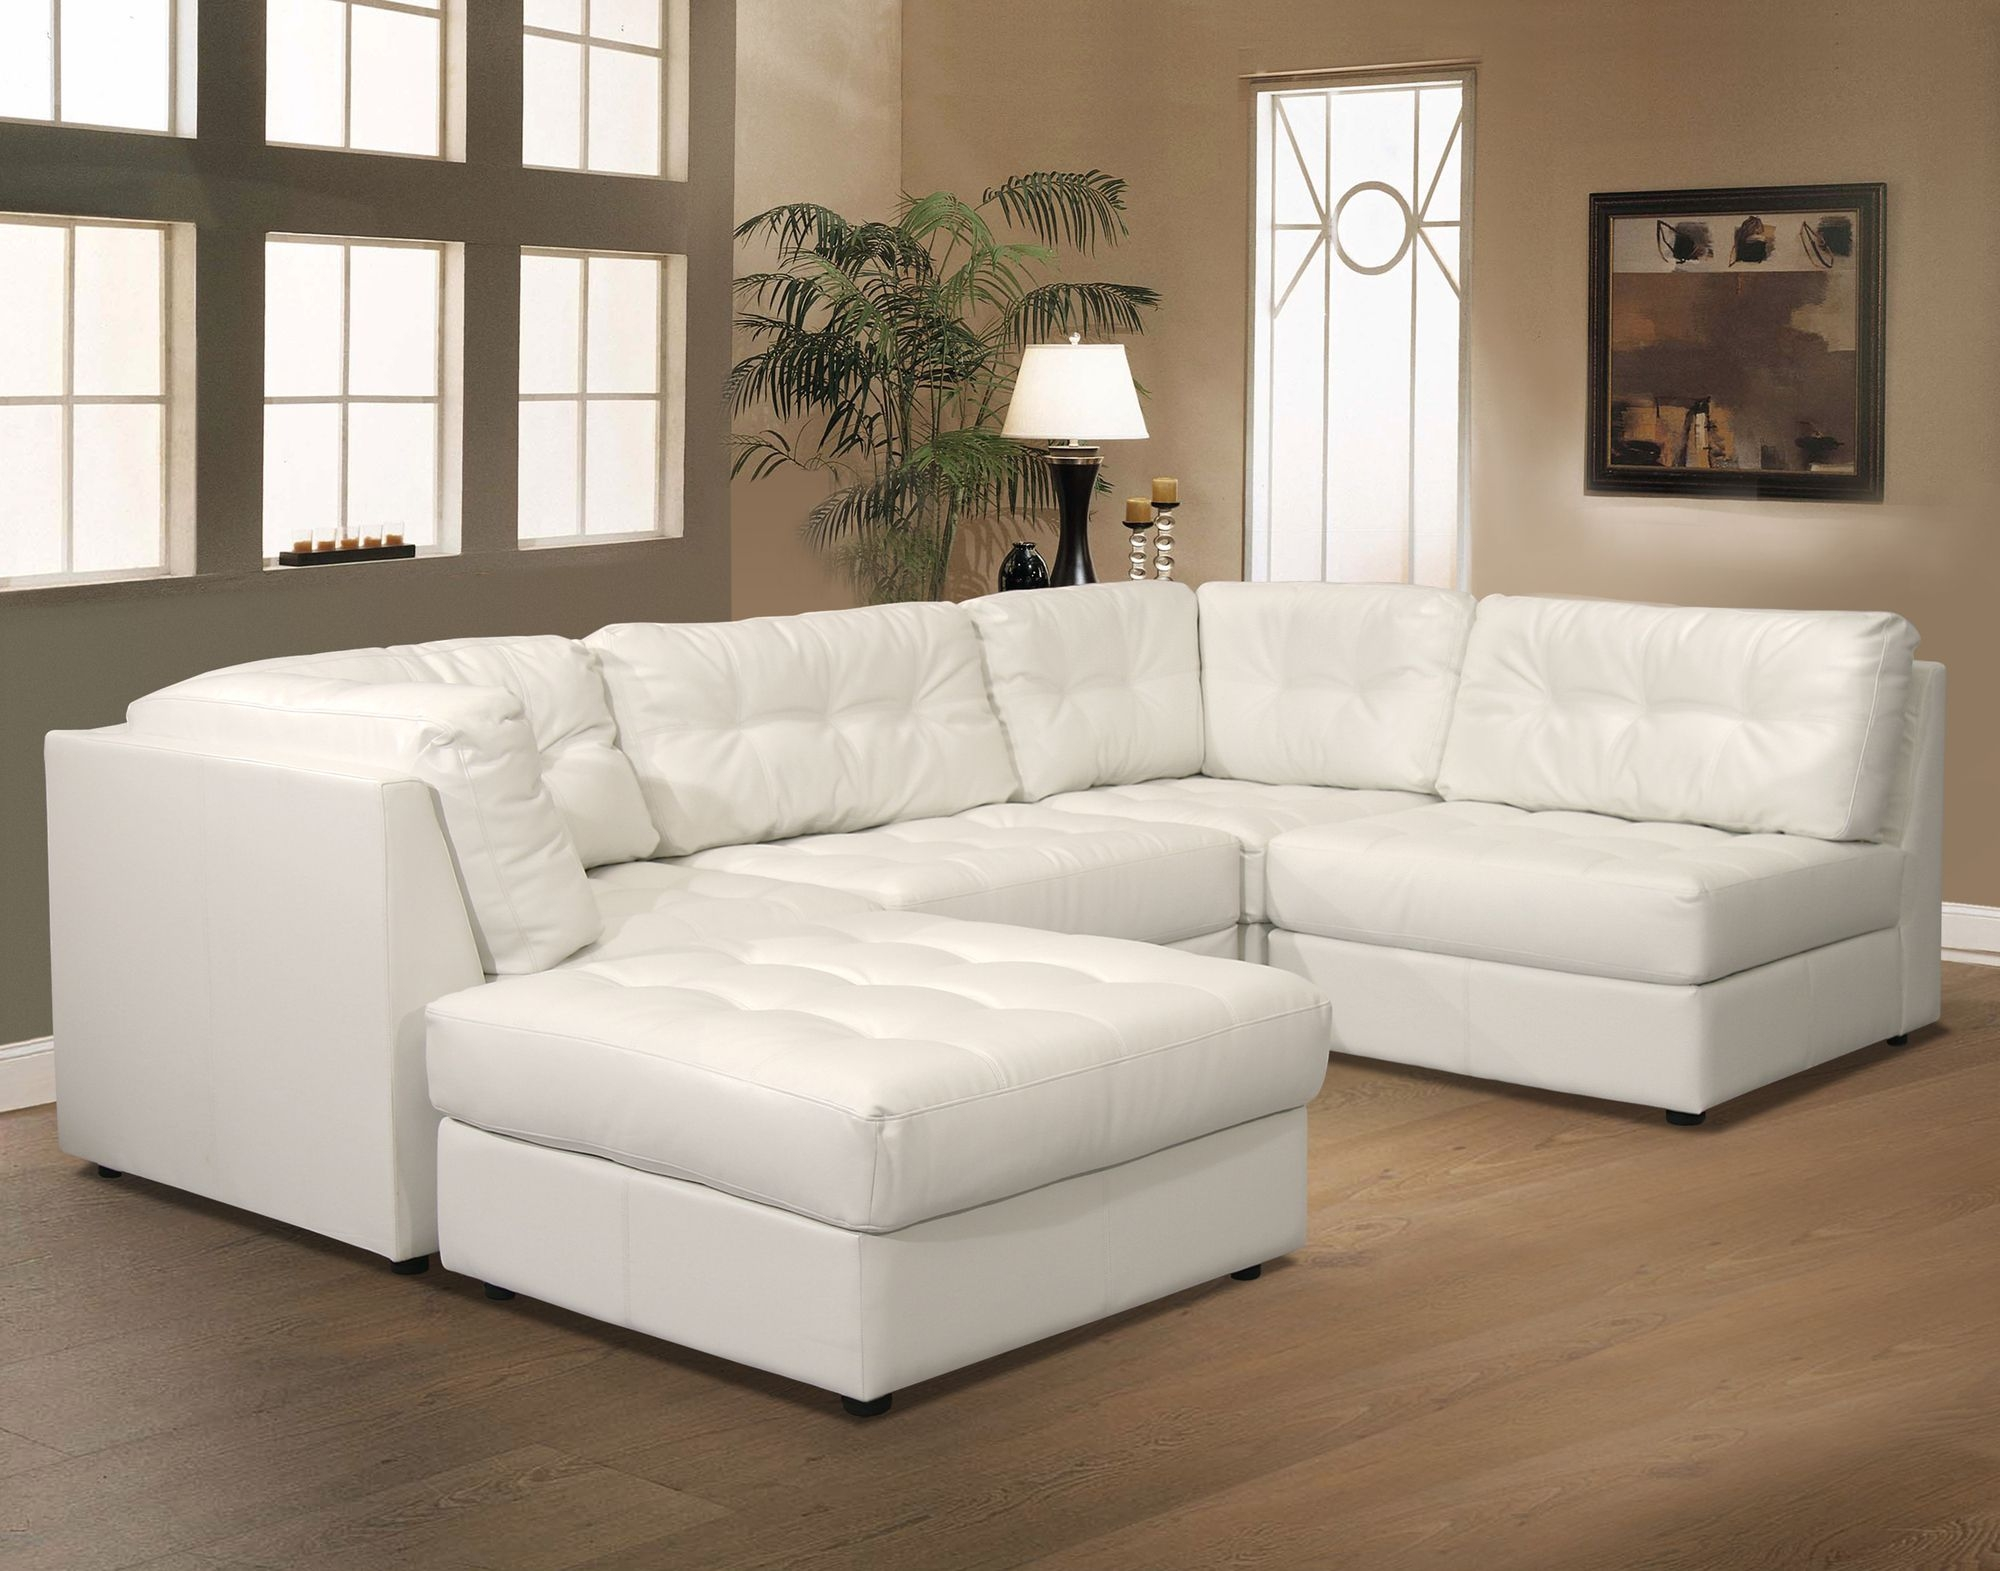 White leather couch Throw Small White Leather Sectional 15 Foter Small White Leather Sectional Ideas On Foter